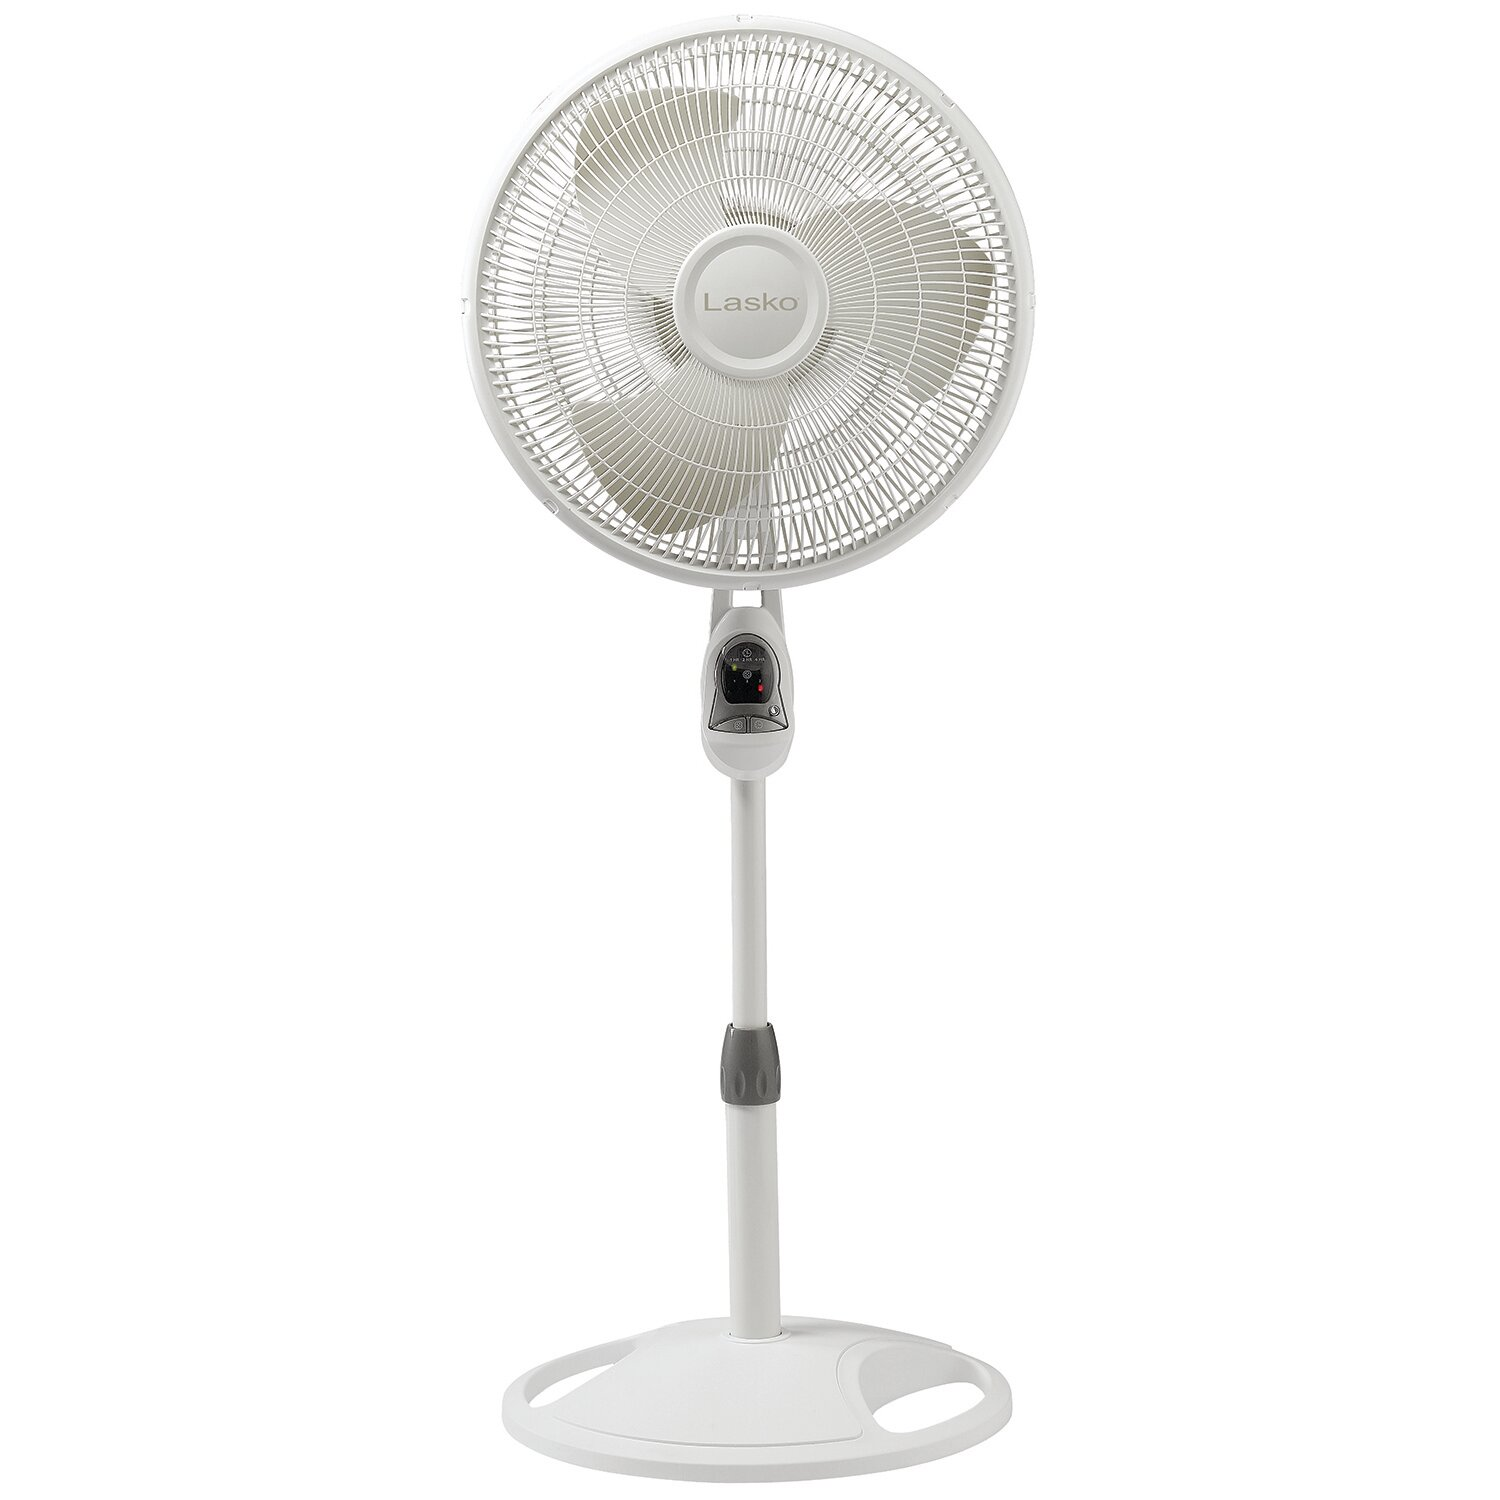 Pedestal Fan With Remote : Beautiful pedestal fan with remote for your home design